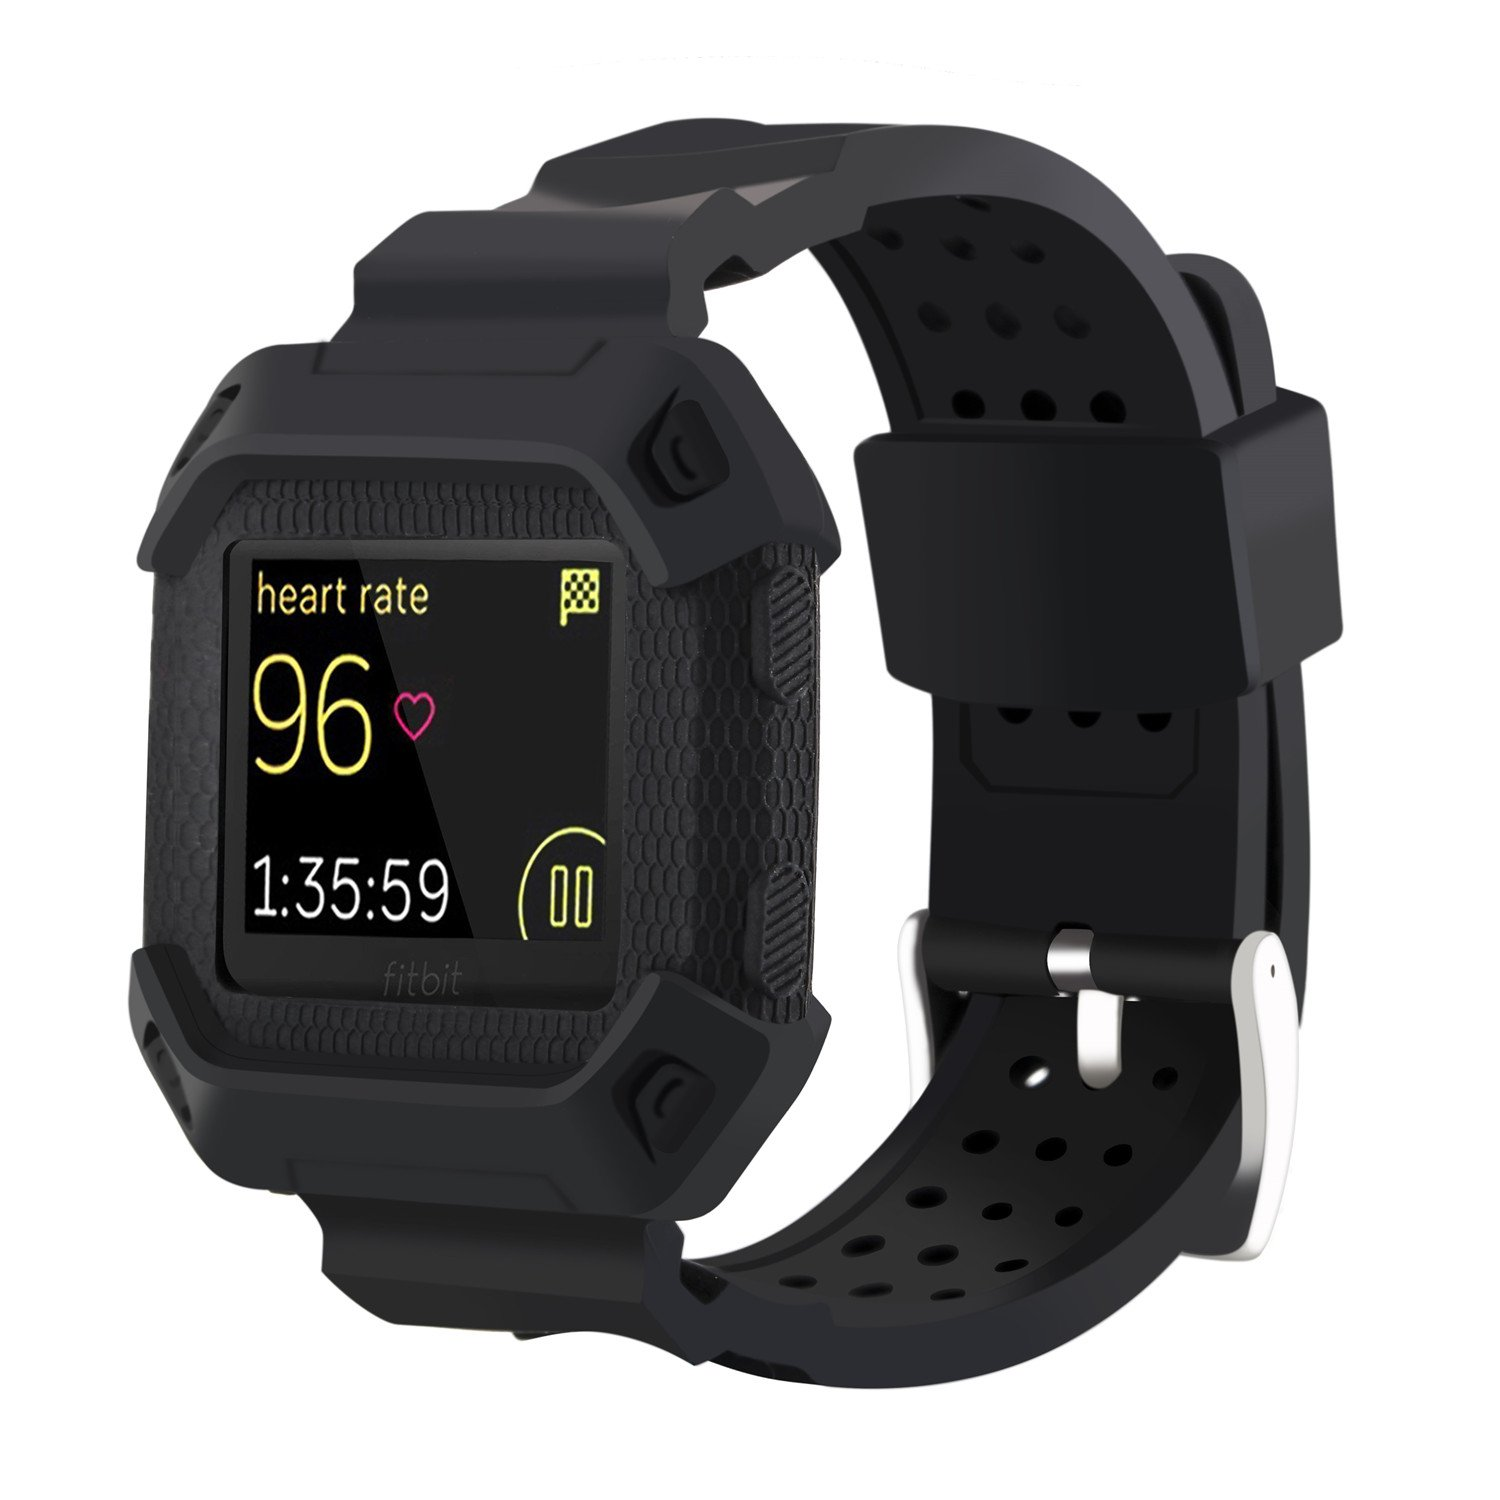 watch holes prices ailang smartwatches for wristband ventilation case smartwatch accessories protective resilient sport rugged with shop soft silicone smart sale rug replacement strap bracelet